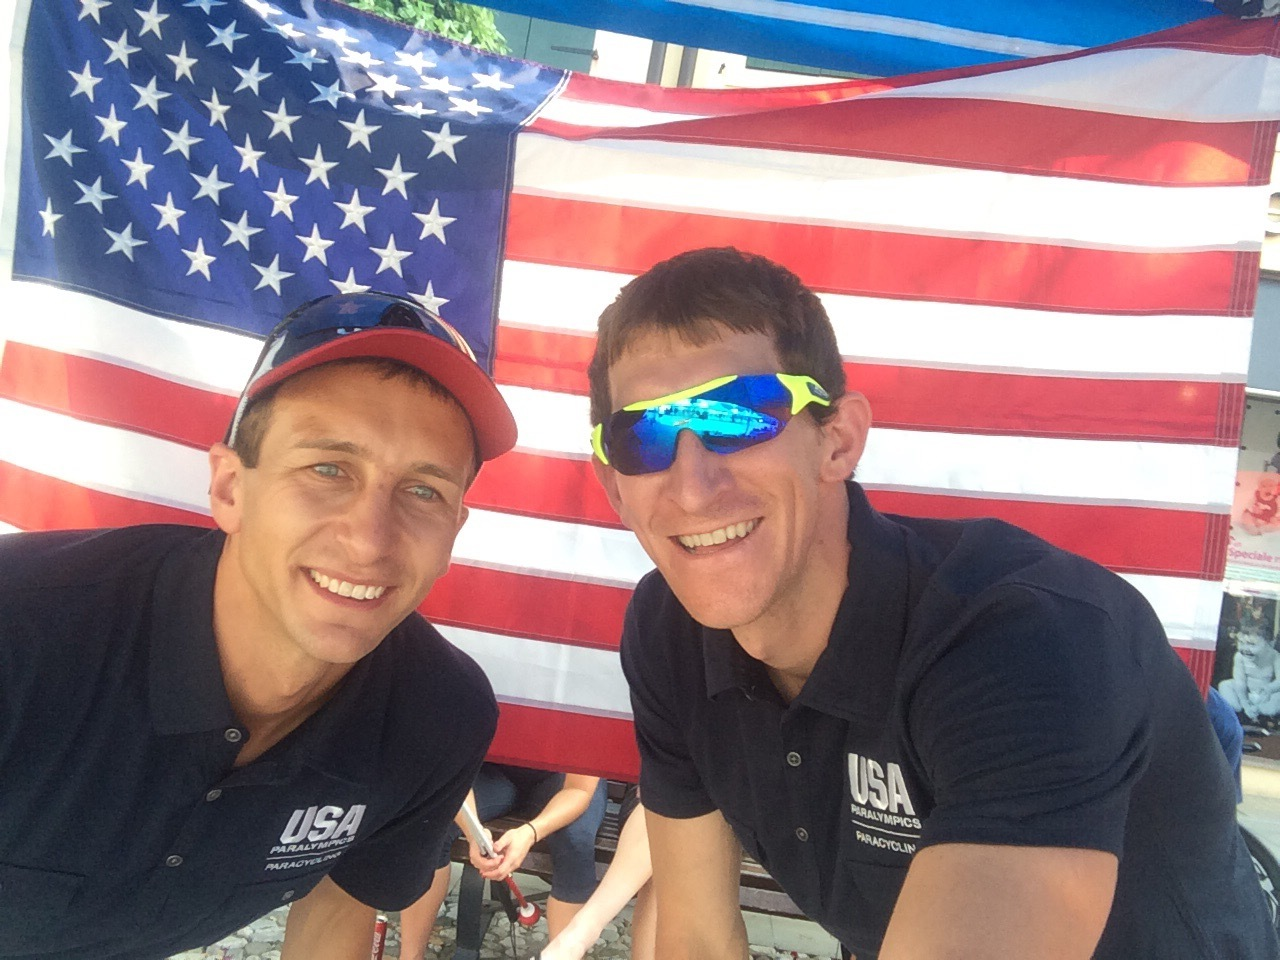 Colin Riley and I racing for Team USA in Europe 2015. Colin is a class act guy!